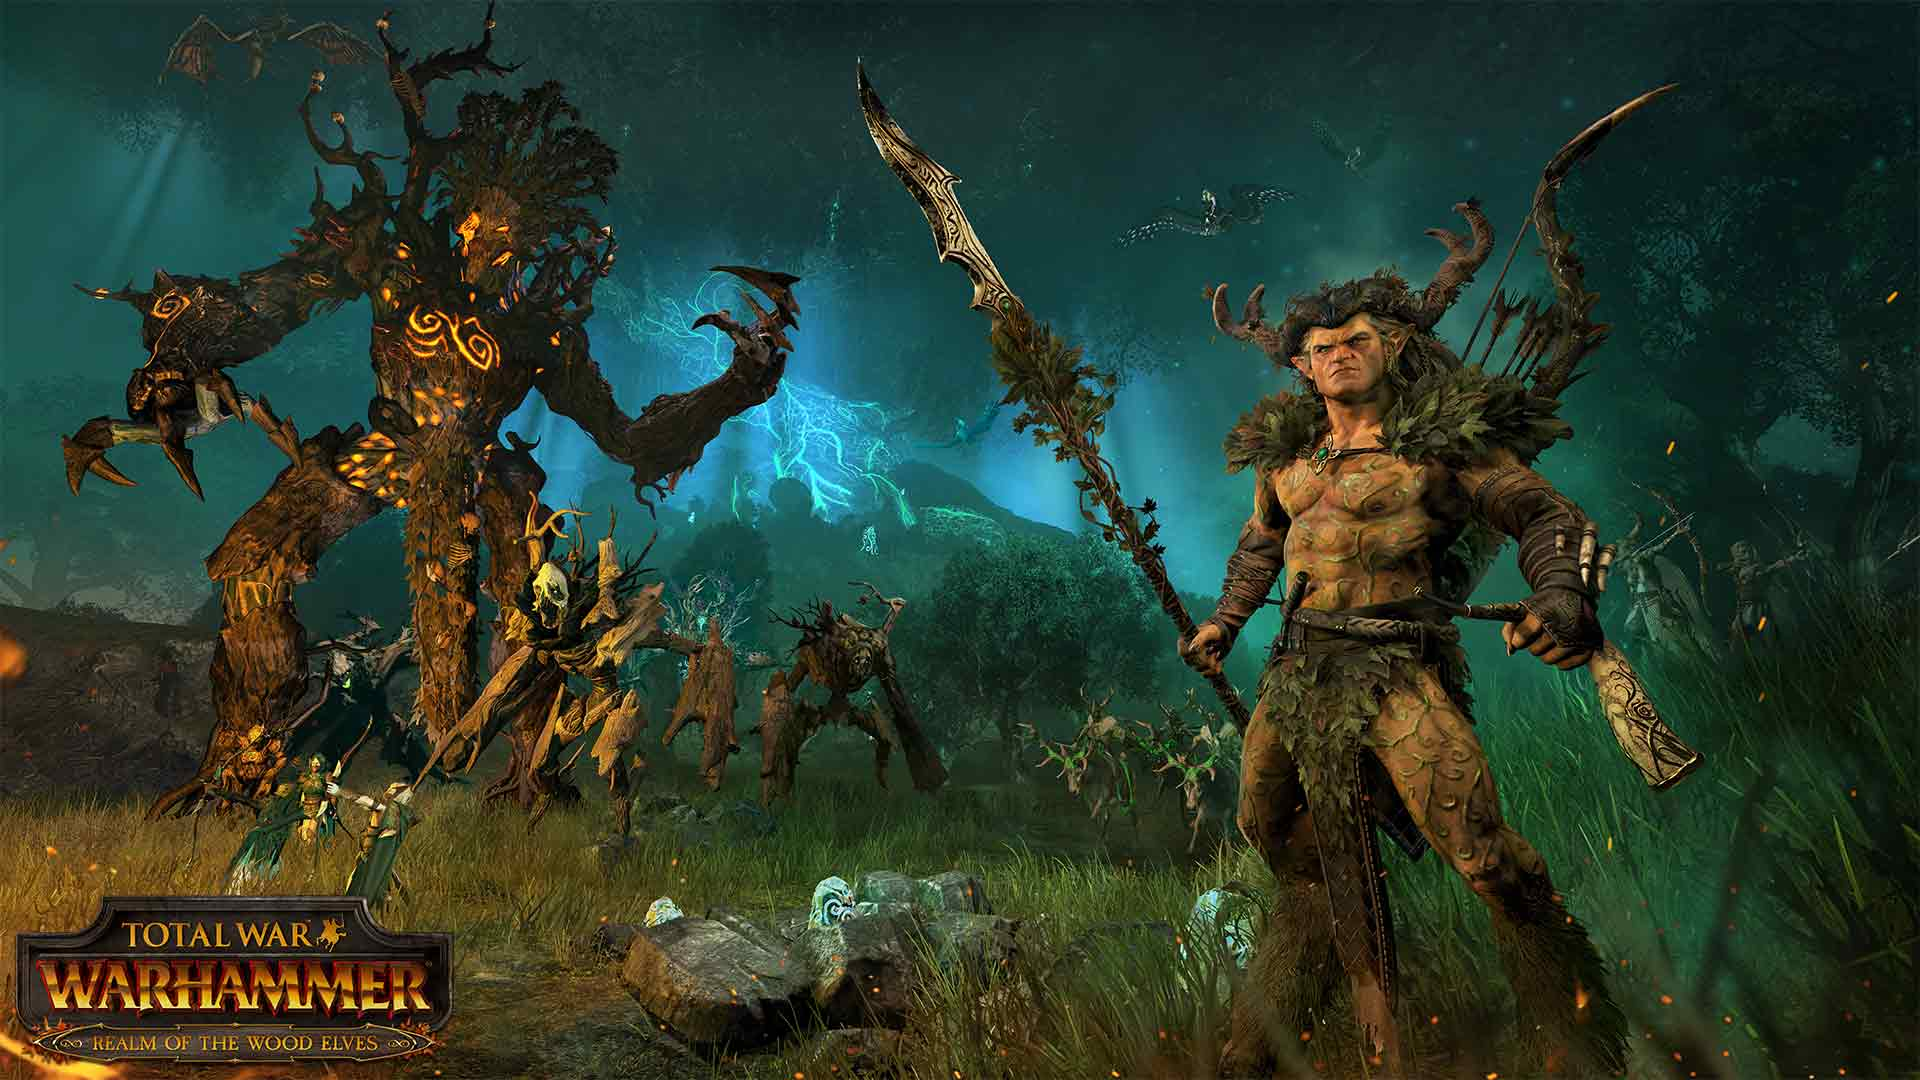 Total War: Realm of the Wood Elves